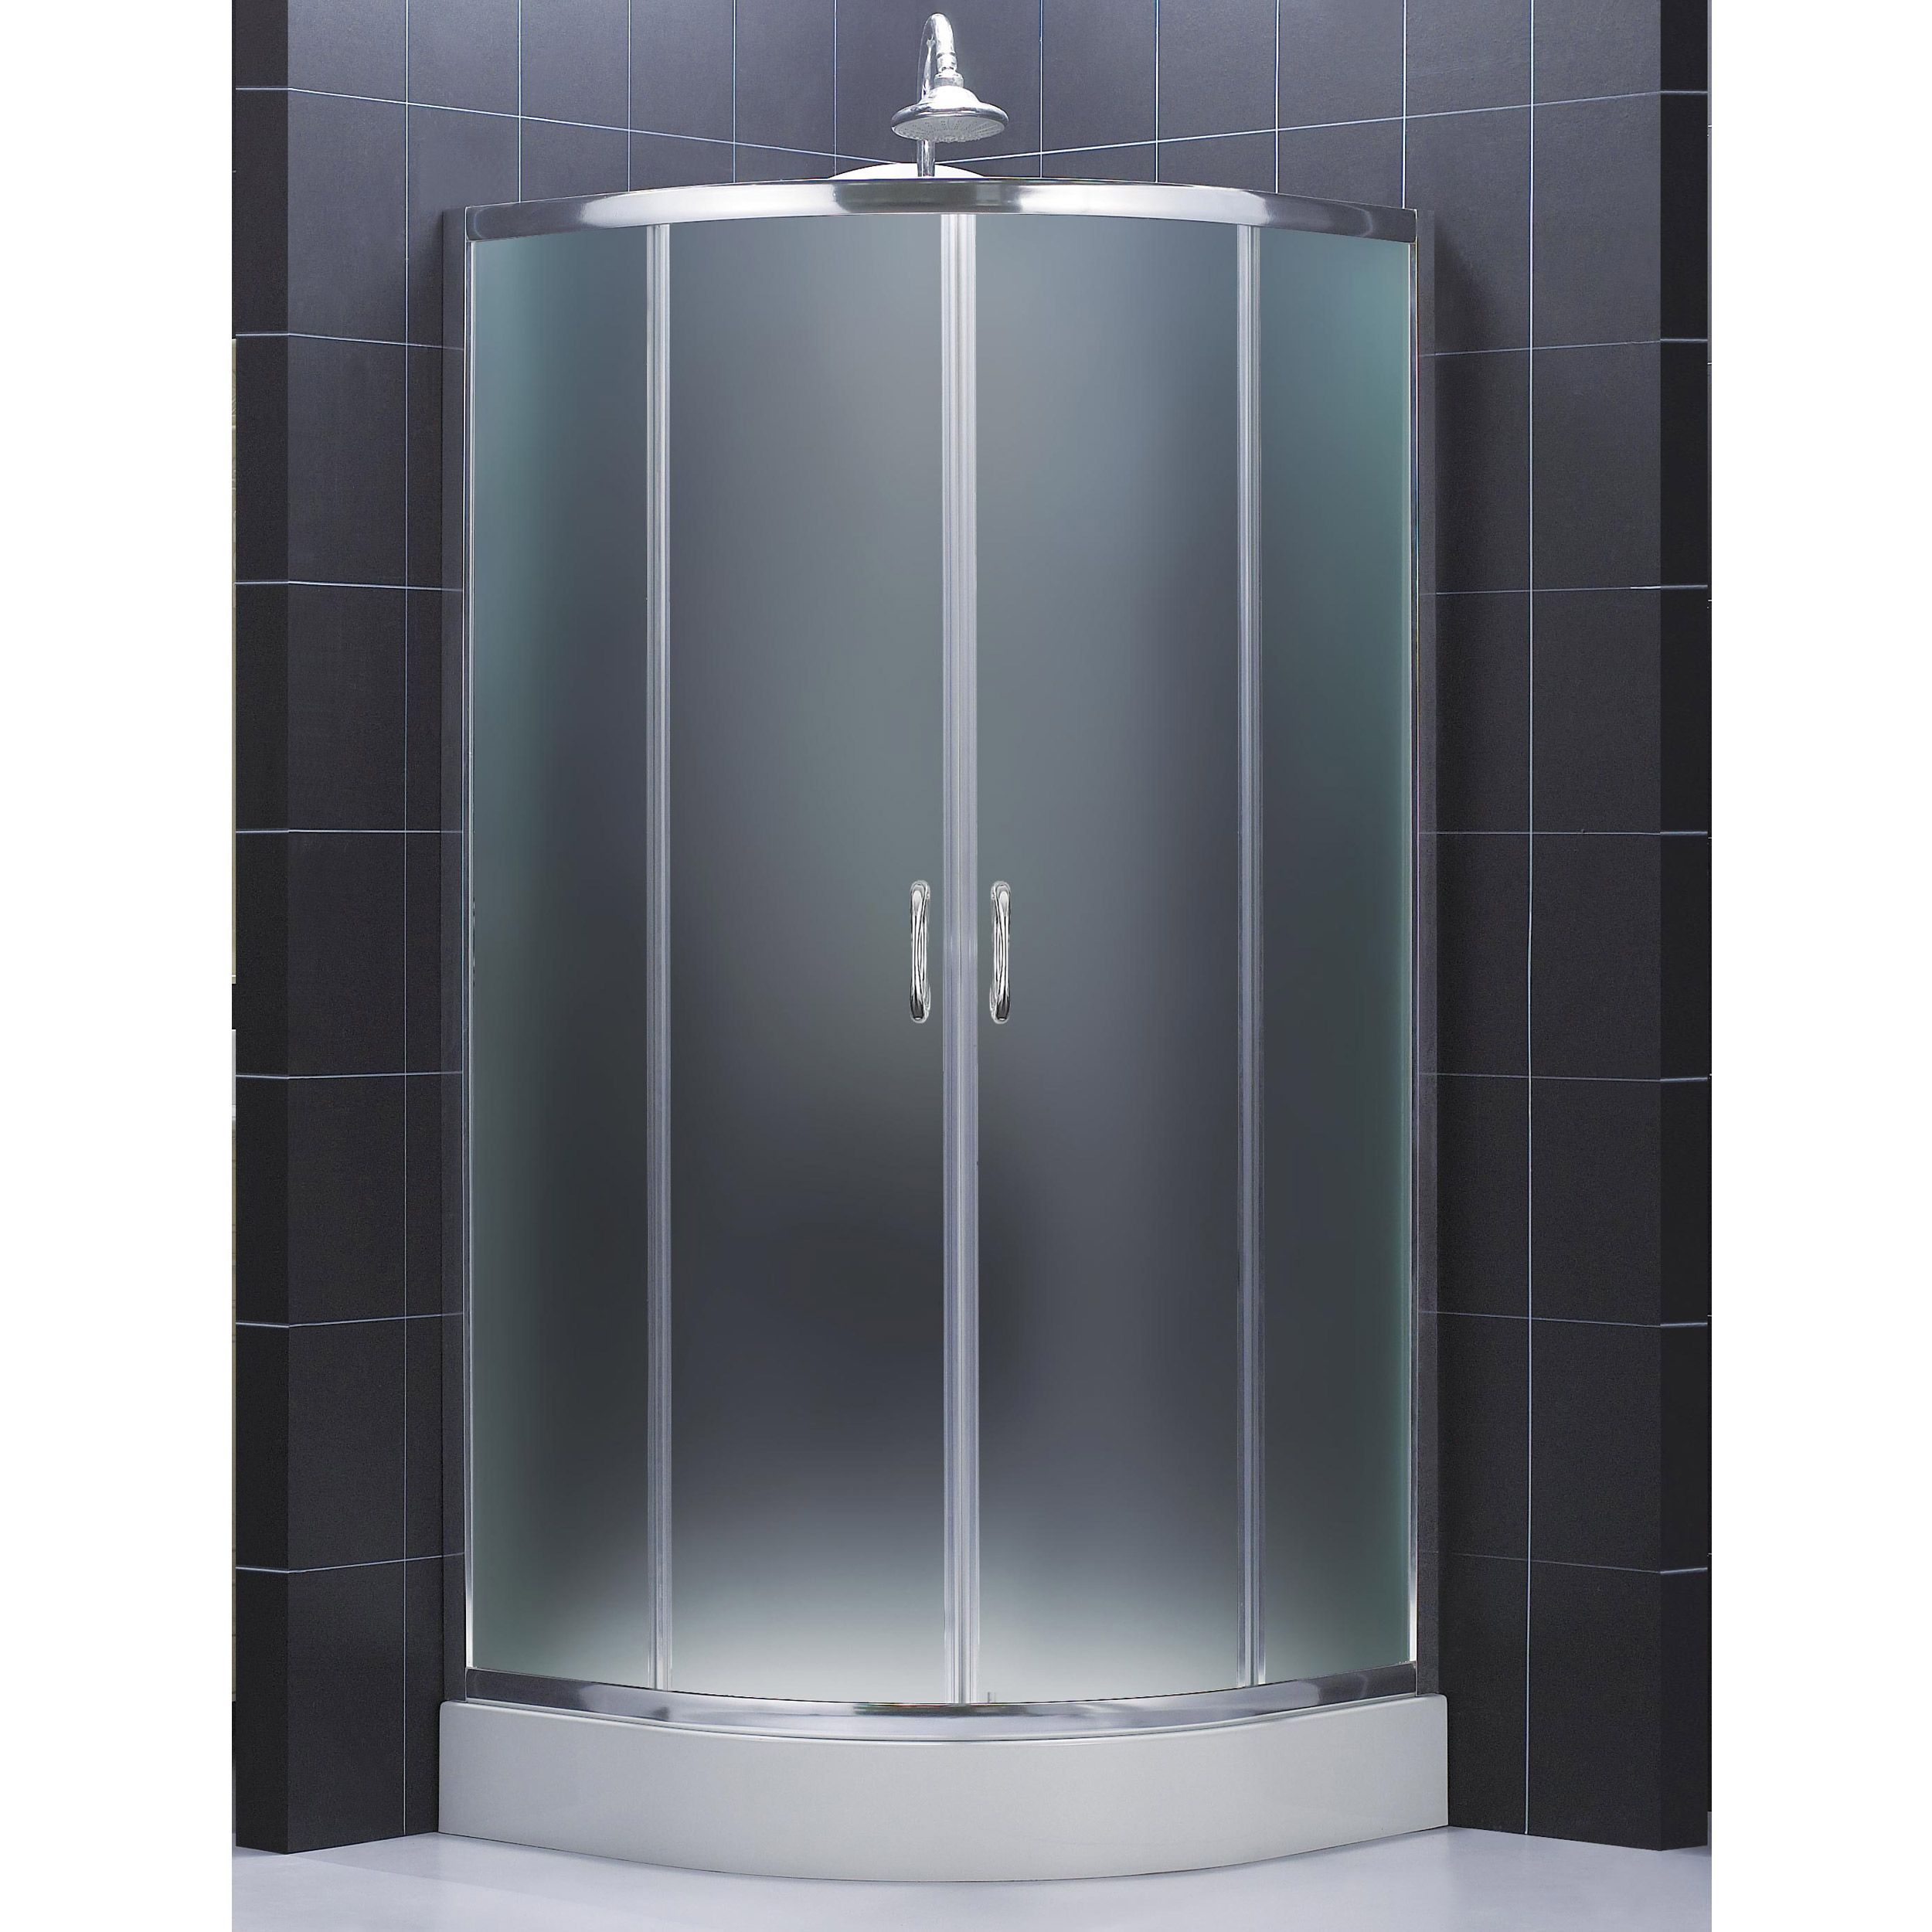 DreamLine Prime 34.375 x 34.375-inch Frameless Sliding Shower ...